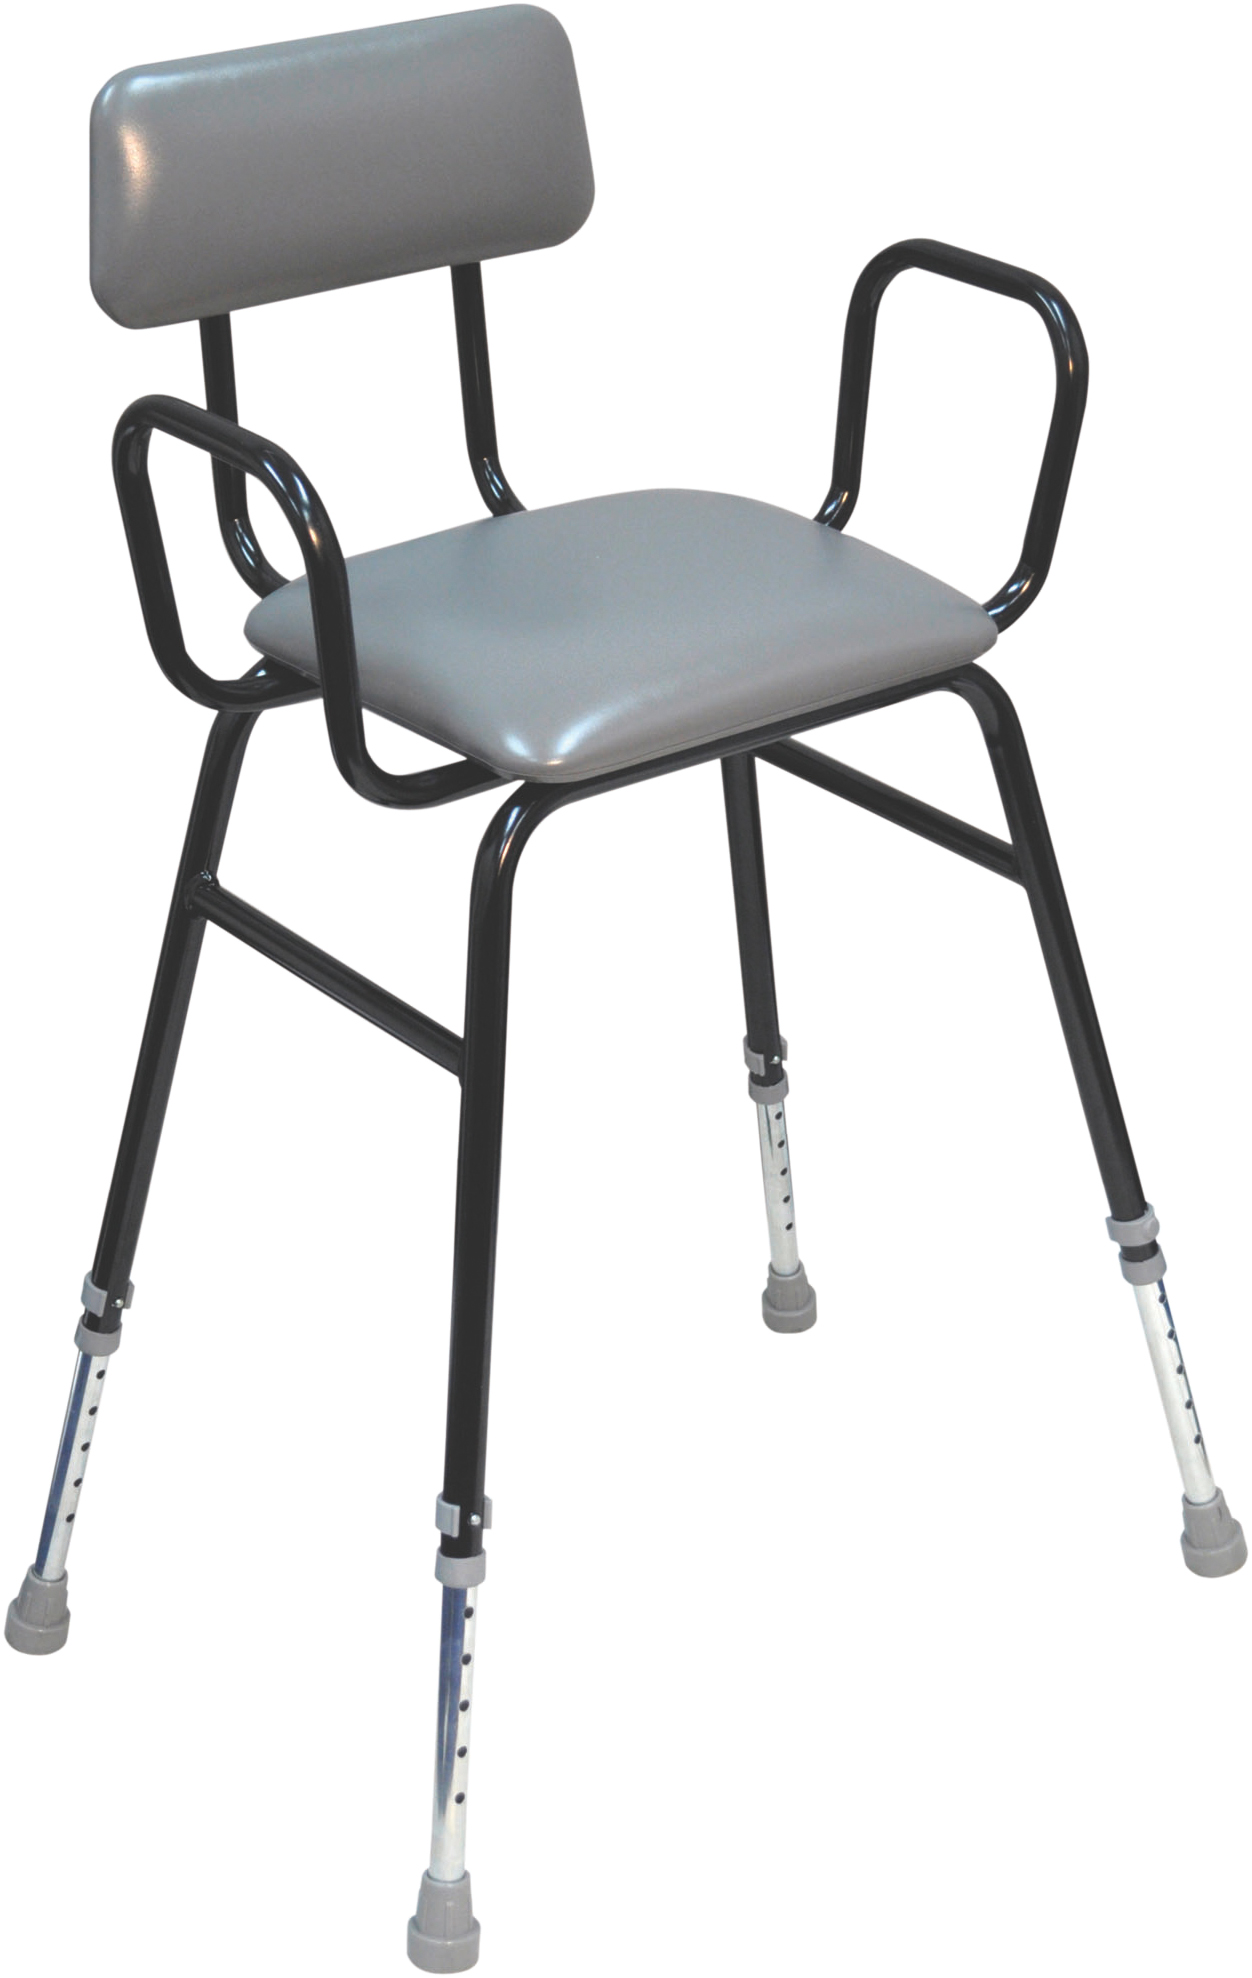 Black Perching Stool Aidapt Mobility Aids Amp Independent